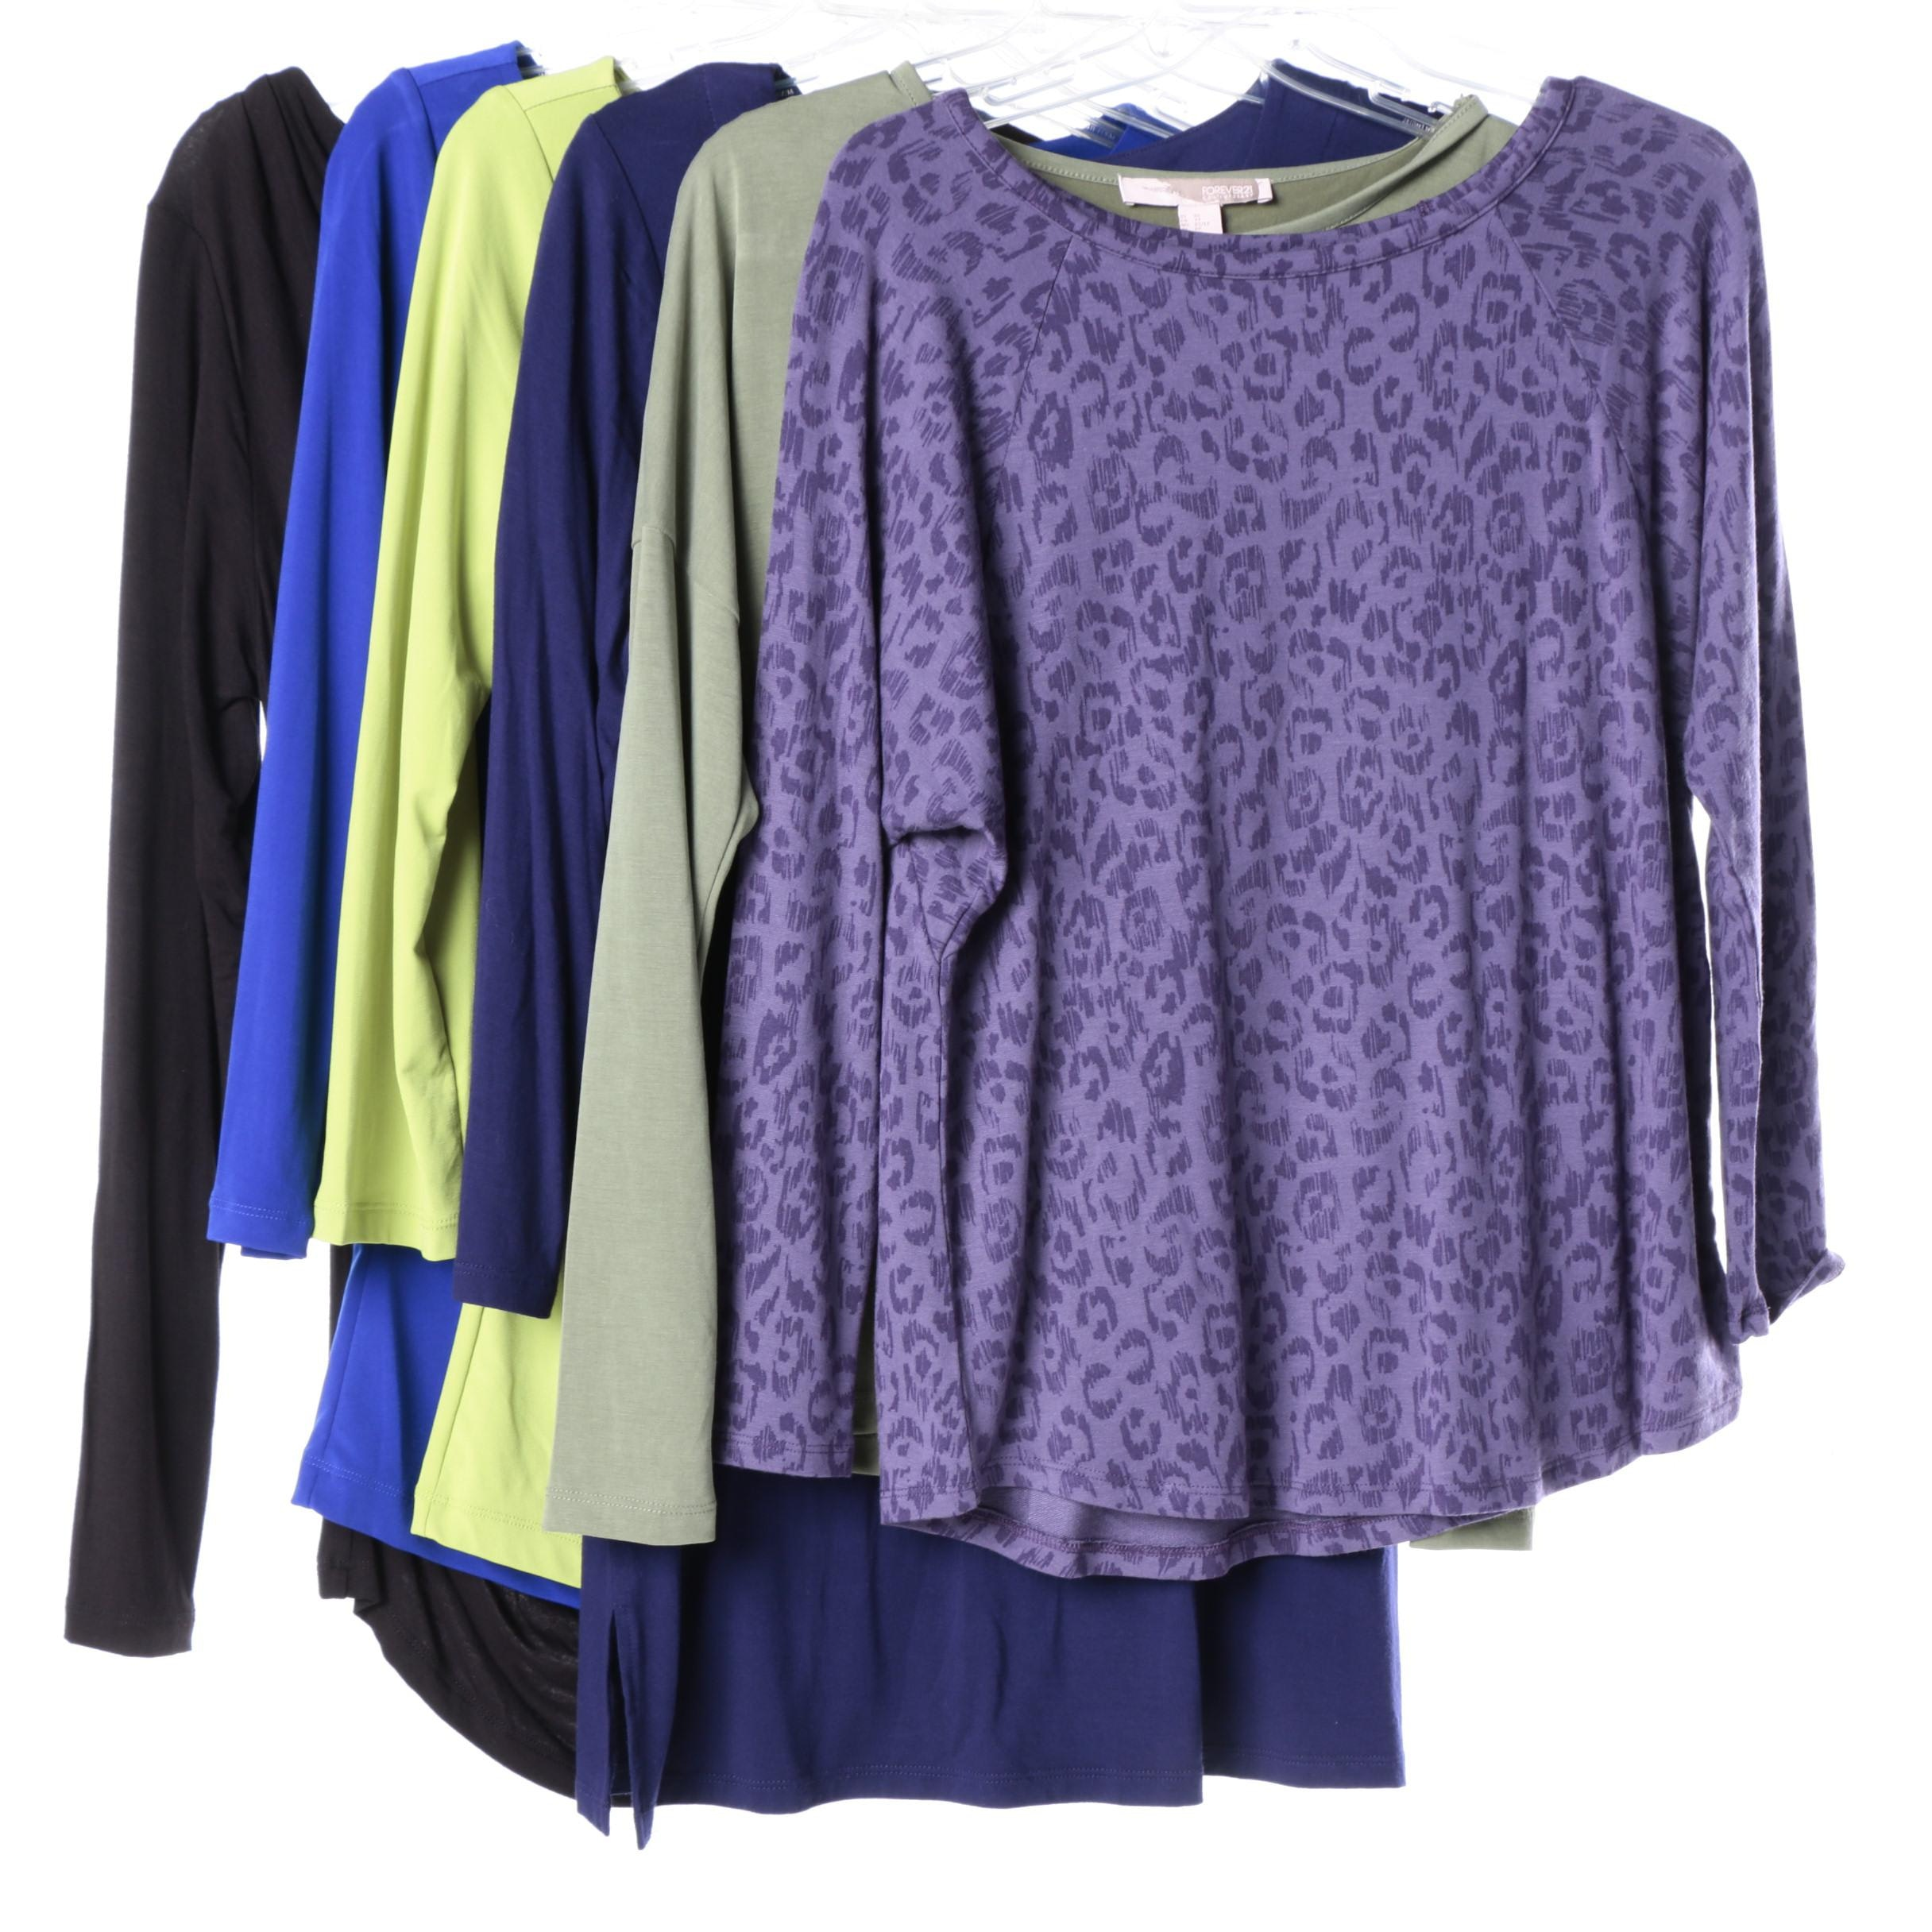 Women's Long Sleeved T-shirts, Including Adrianna Papell